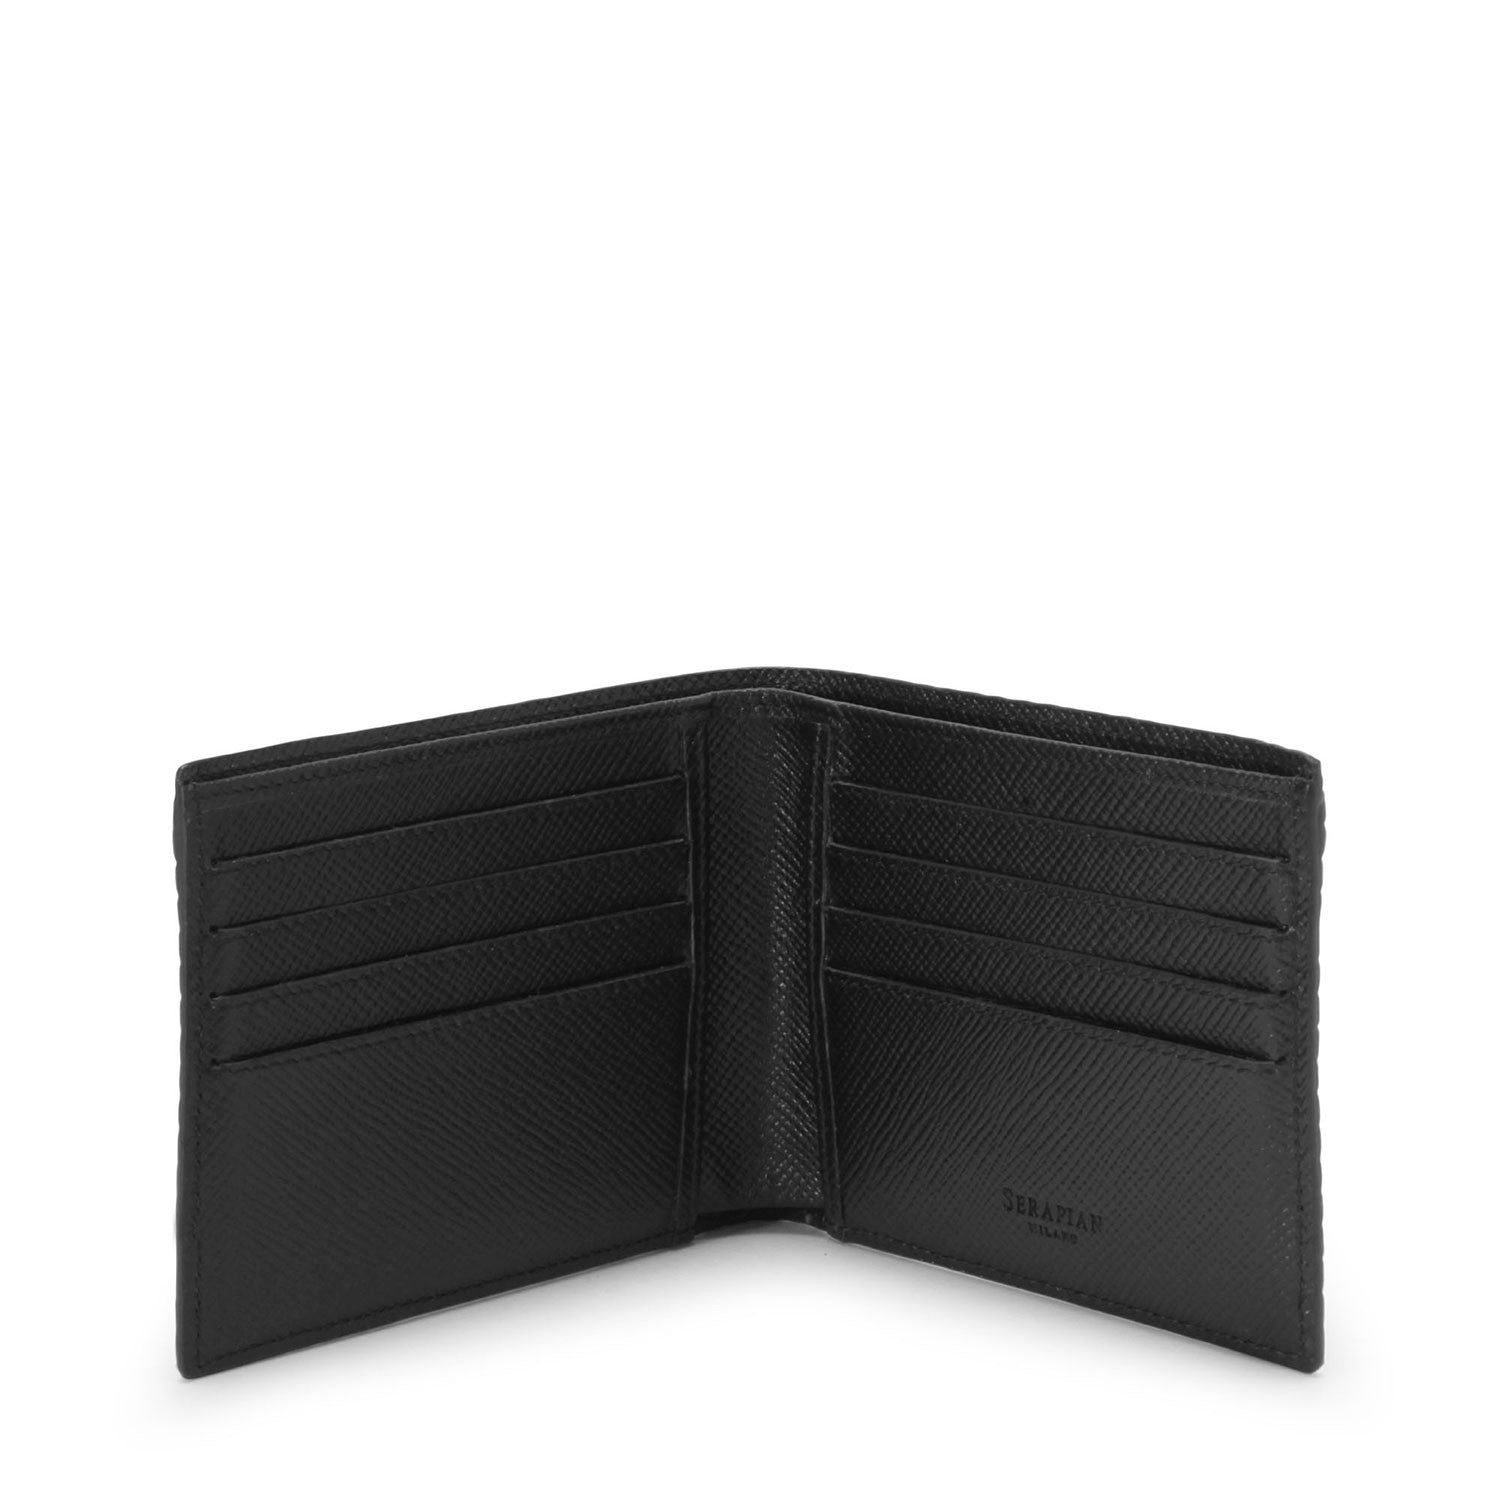 Billfold 8cc Stepan/Evolution - Ocean Blue/Black